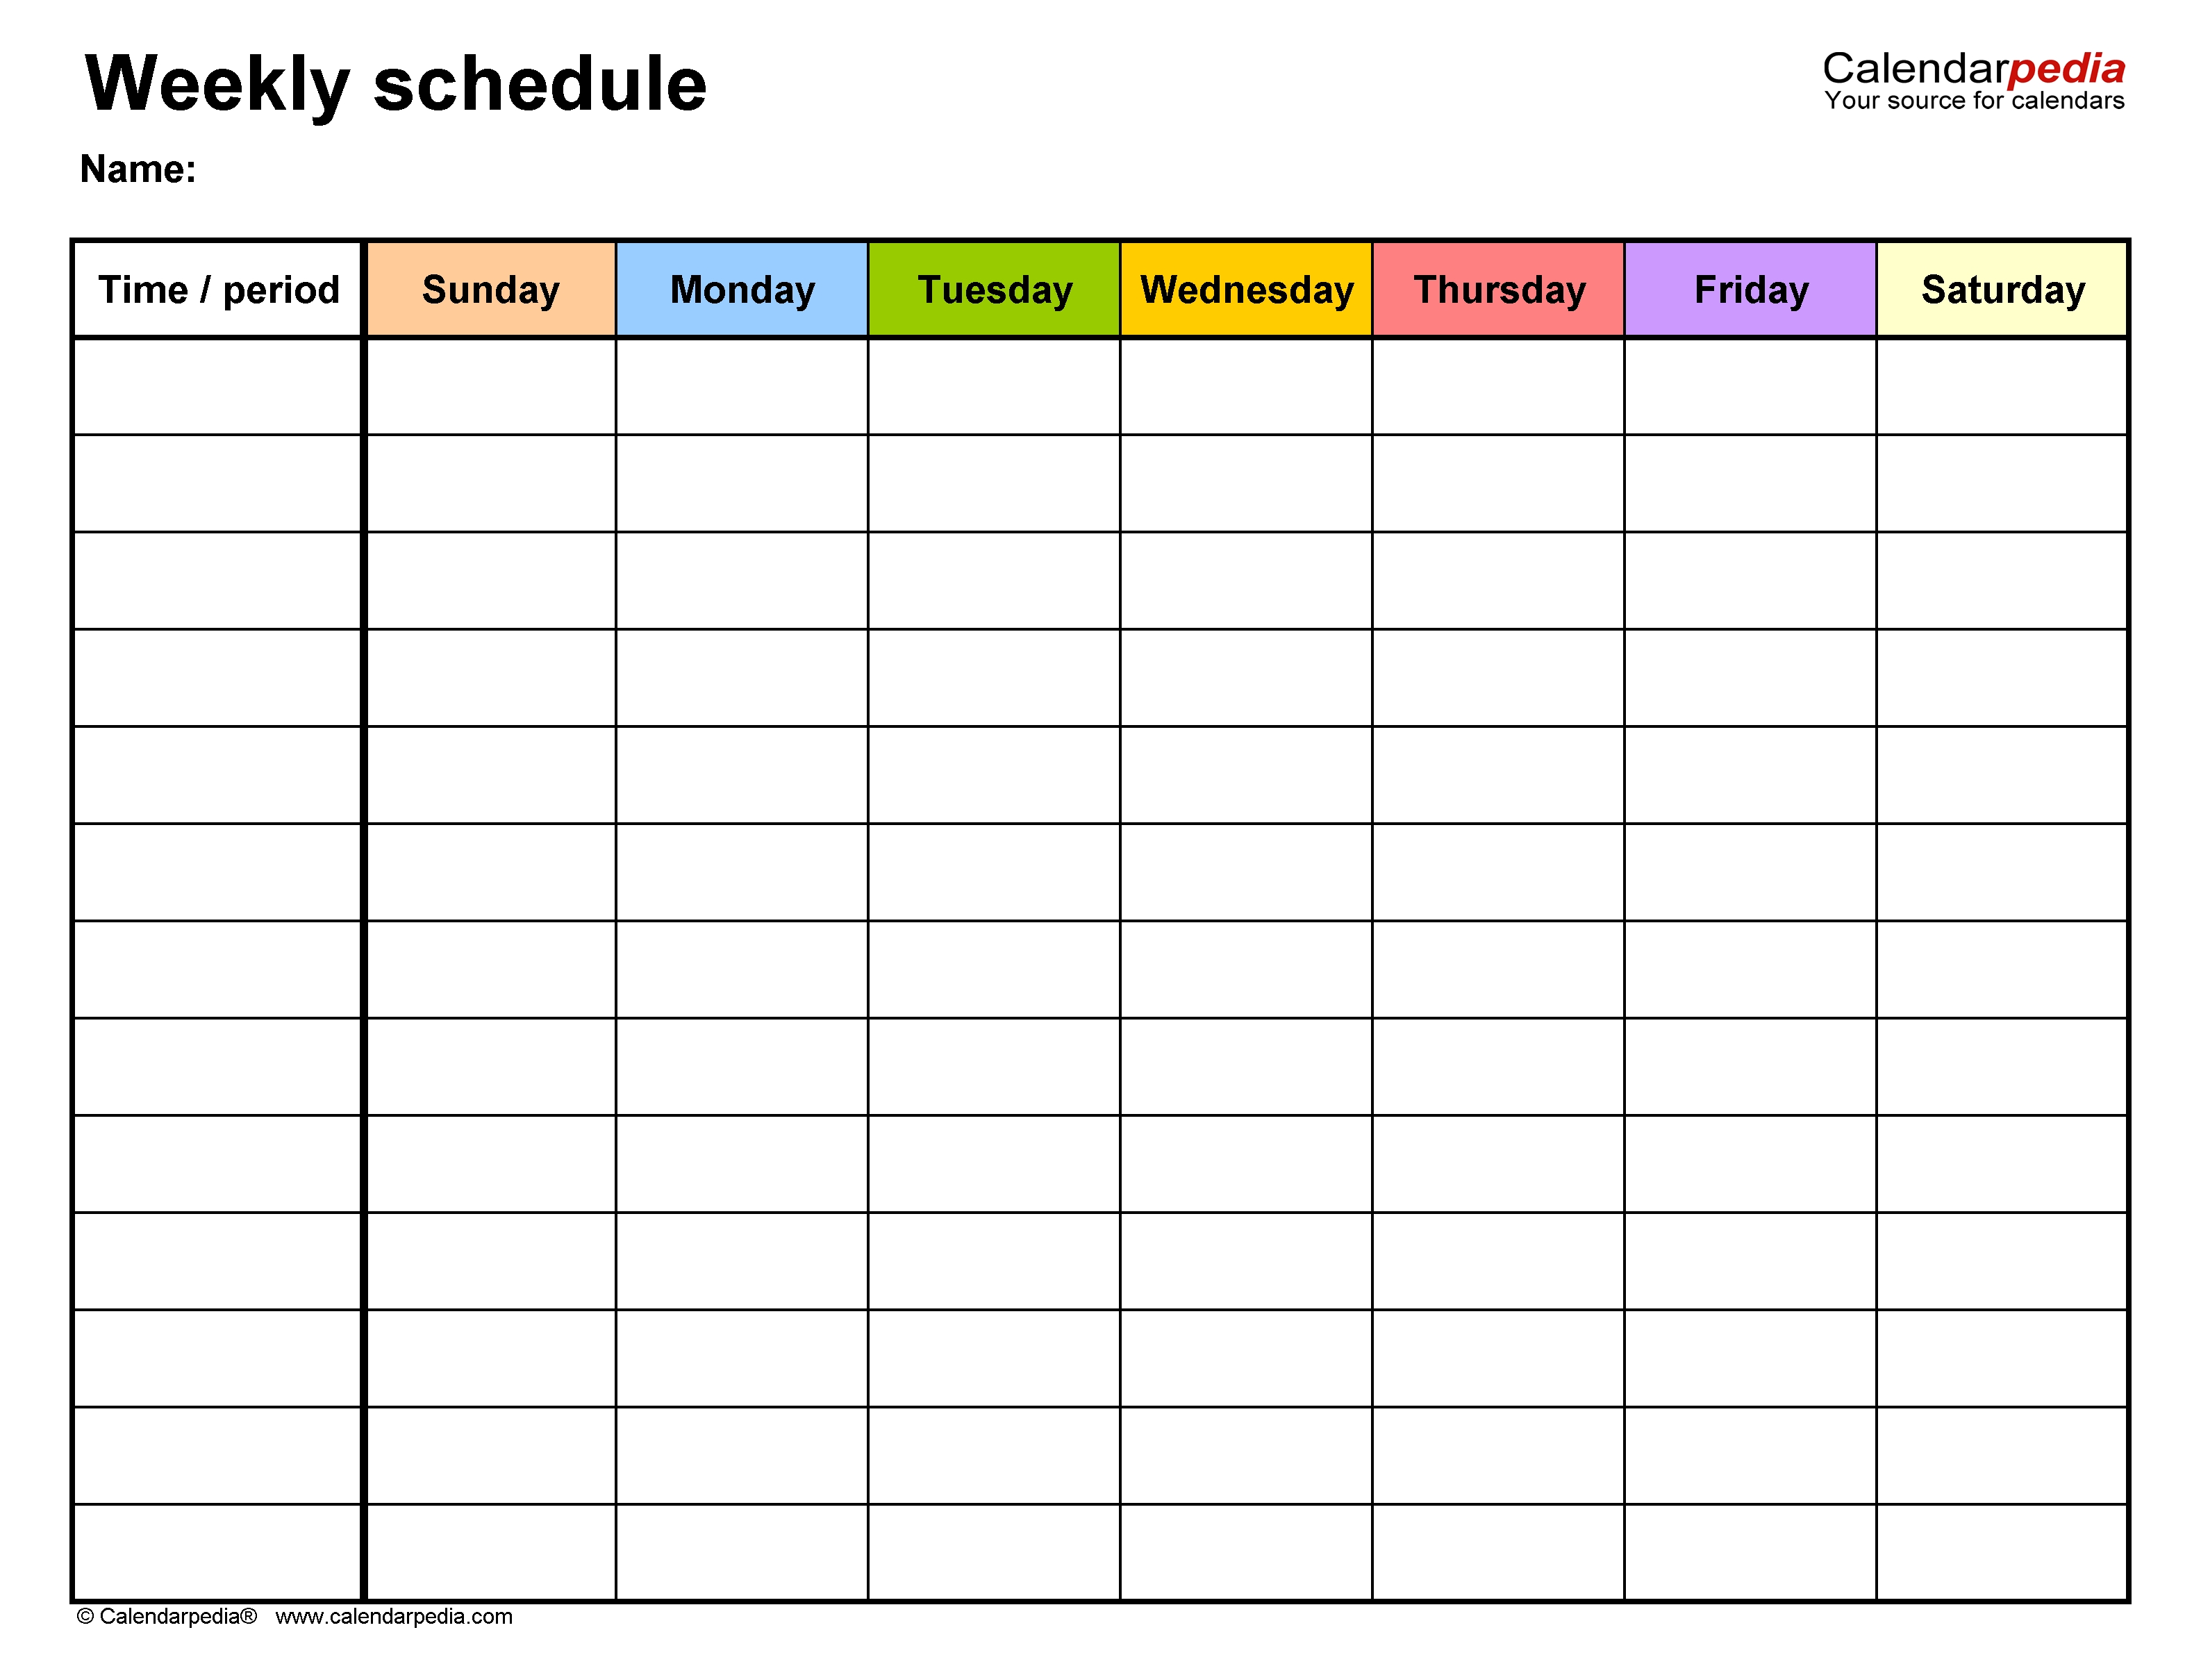 Free Weekly Schedule Templates For Excel - 18 Templates  Free Daily Schedule Template Excel